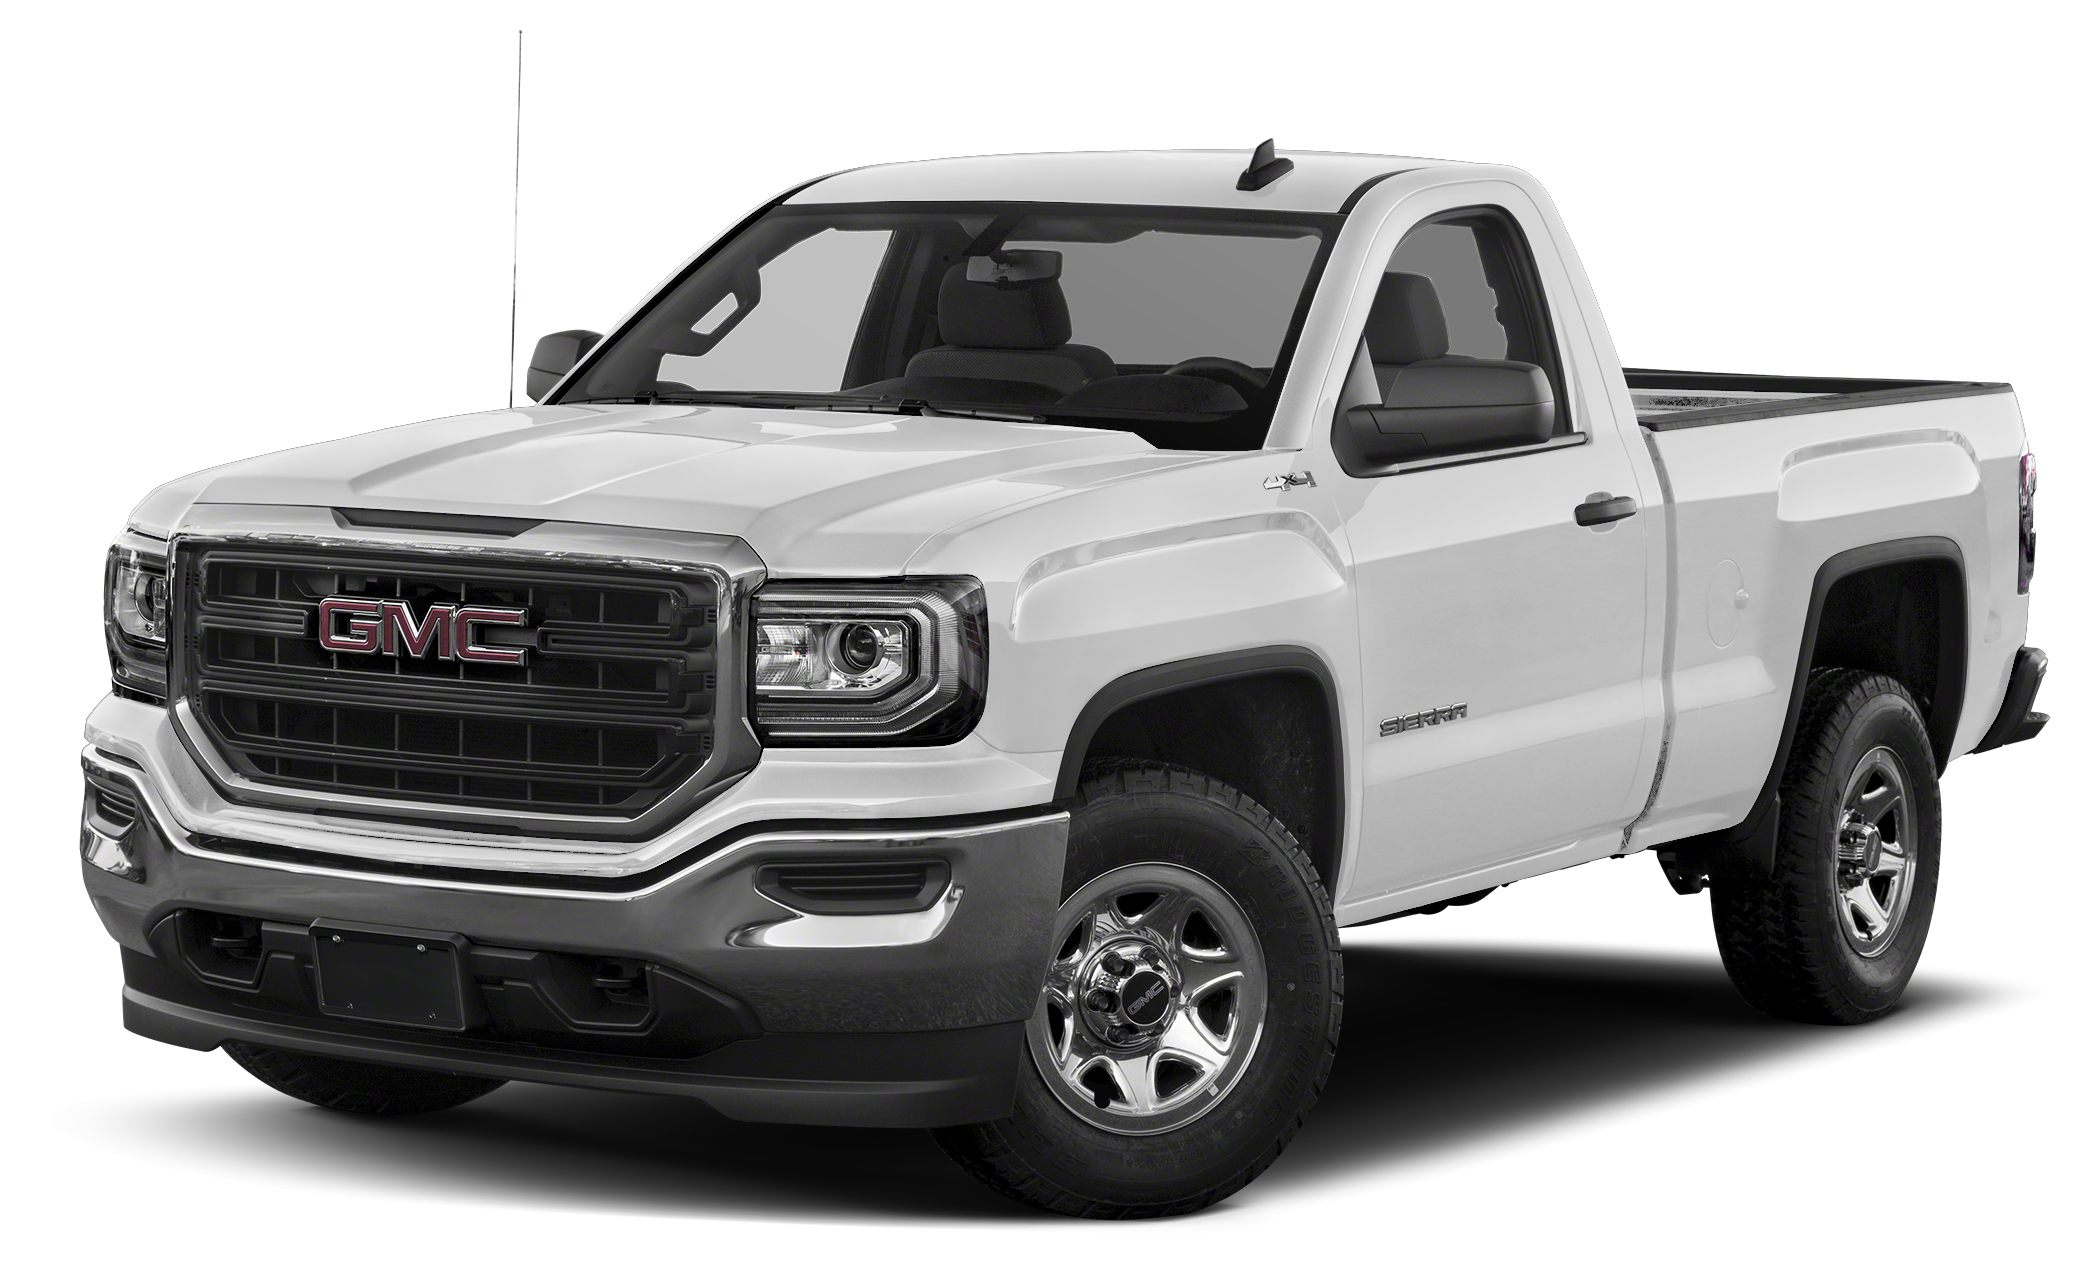 2016 GMC Sierra 1500 Base Sierra 1500 trim ENGINE 43L ECOTEC3 V6 WITH ACTIVE F TRANSMISSION